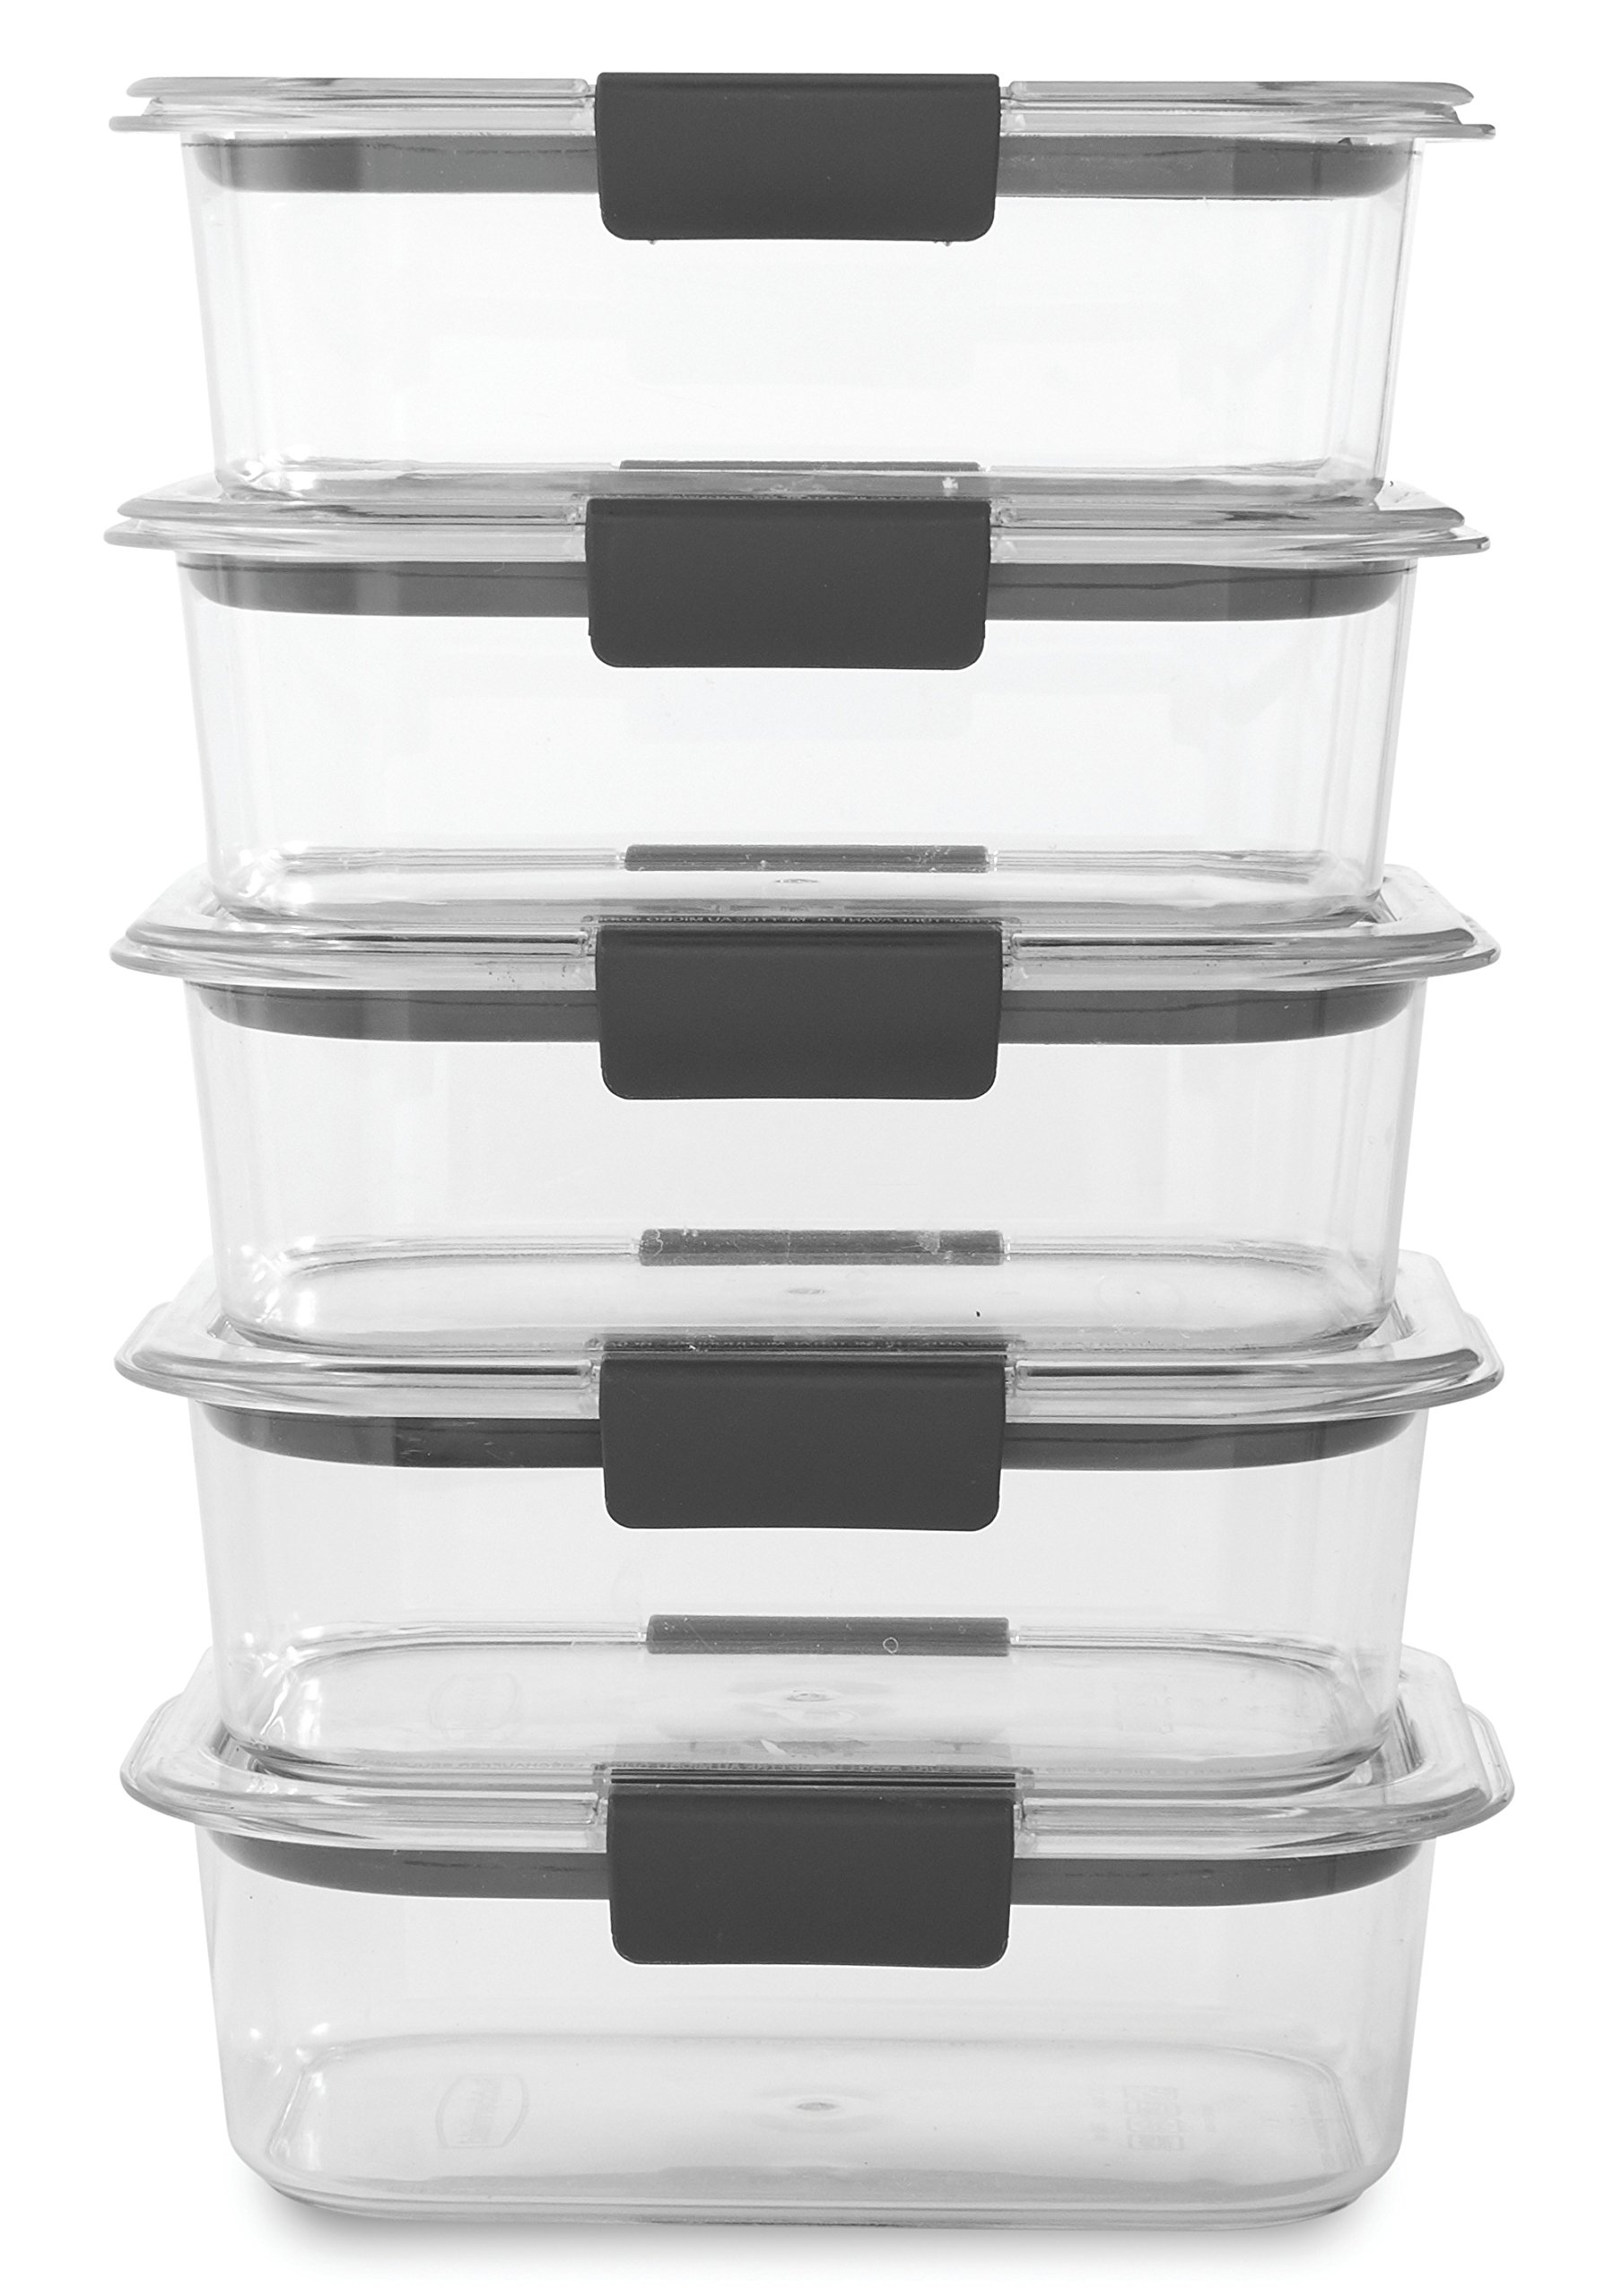 Rubbermaid Brilliance Food Storage Container, BPA-free Plastic, Medium, 3.2 Cup, 5-Pack, Clear by Rubbermaid (Image #1)